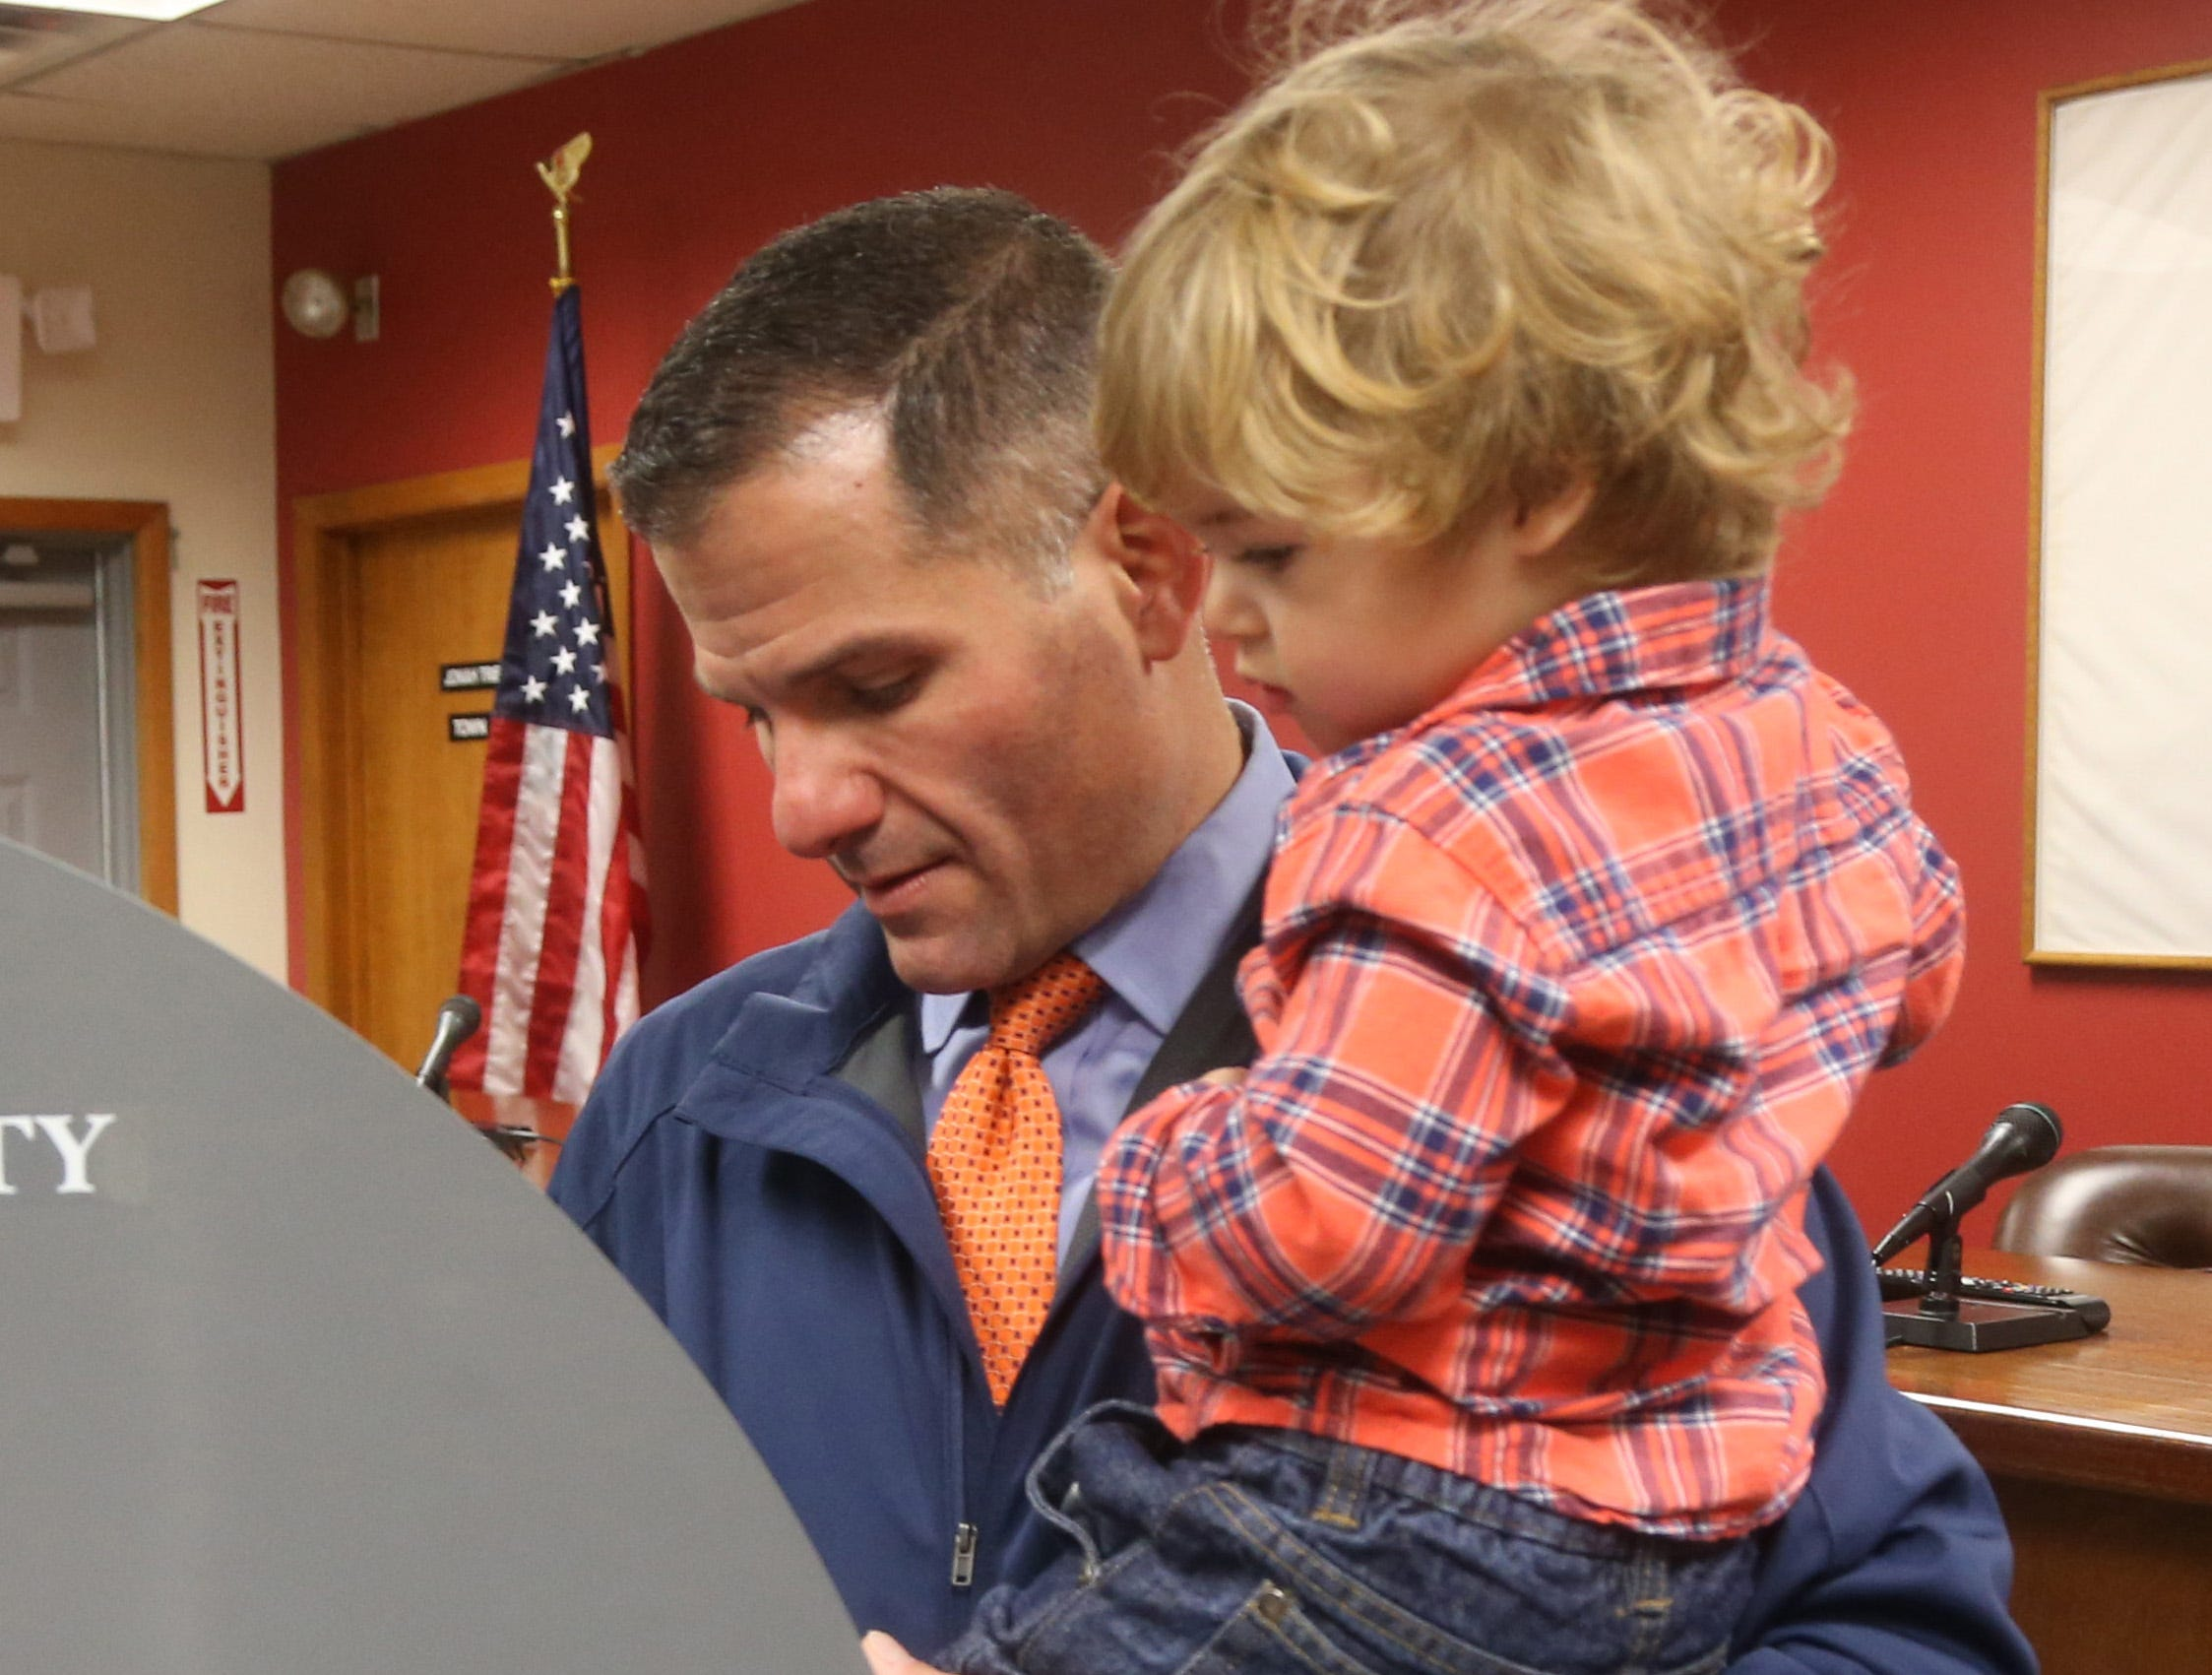 Republican Gubernatorial candidate Marc Molinaro holding his son, Elias, fills in his ballot at Red Hook Town Hall on November 6, 2018.